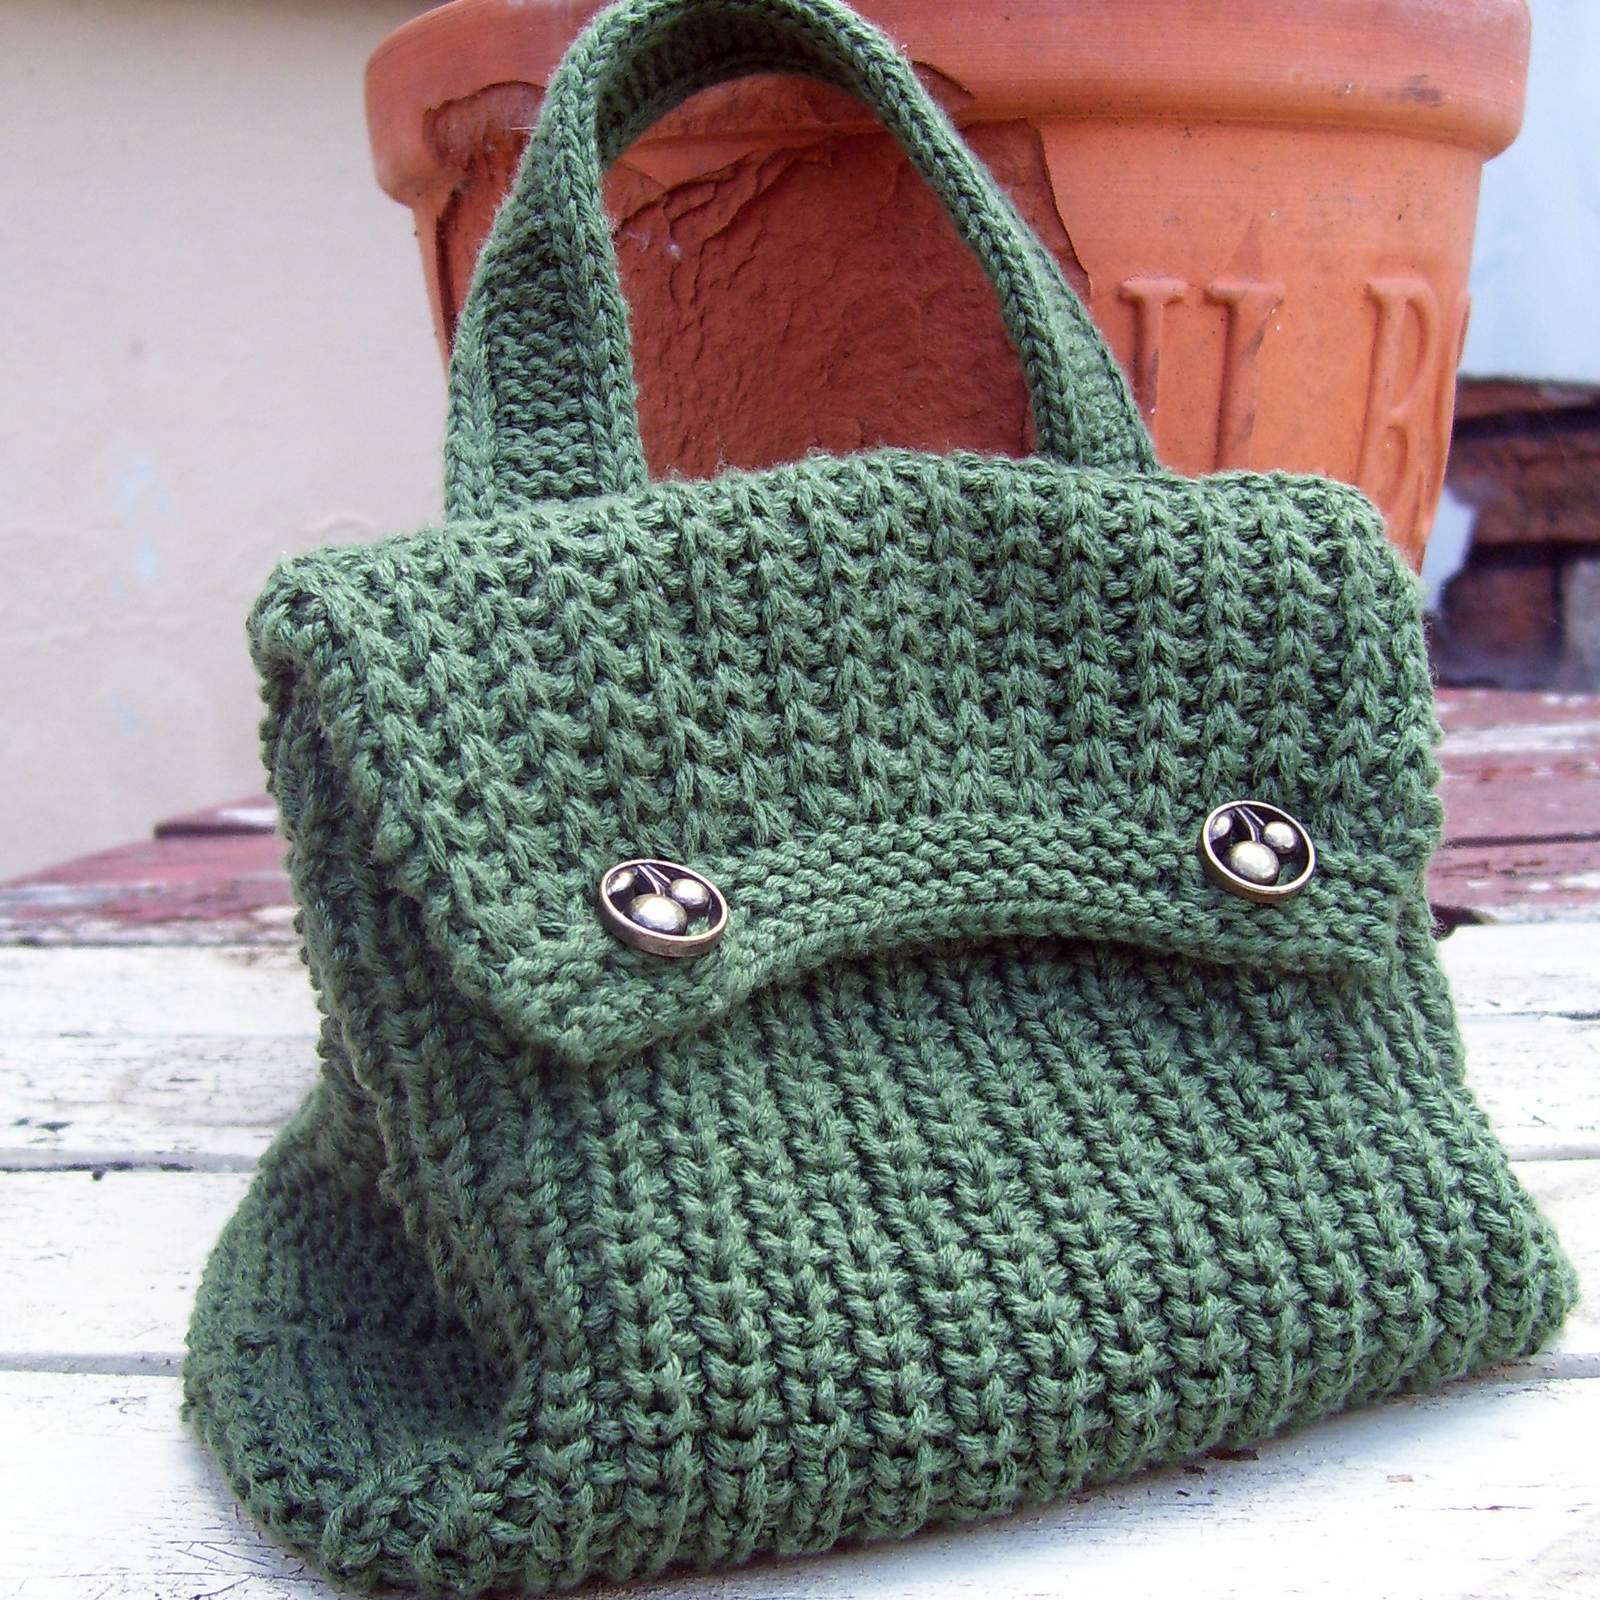 Crochet Bag Pattern : Pinterest Free Crochet Purse Patterns